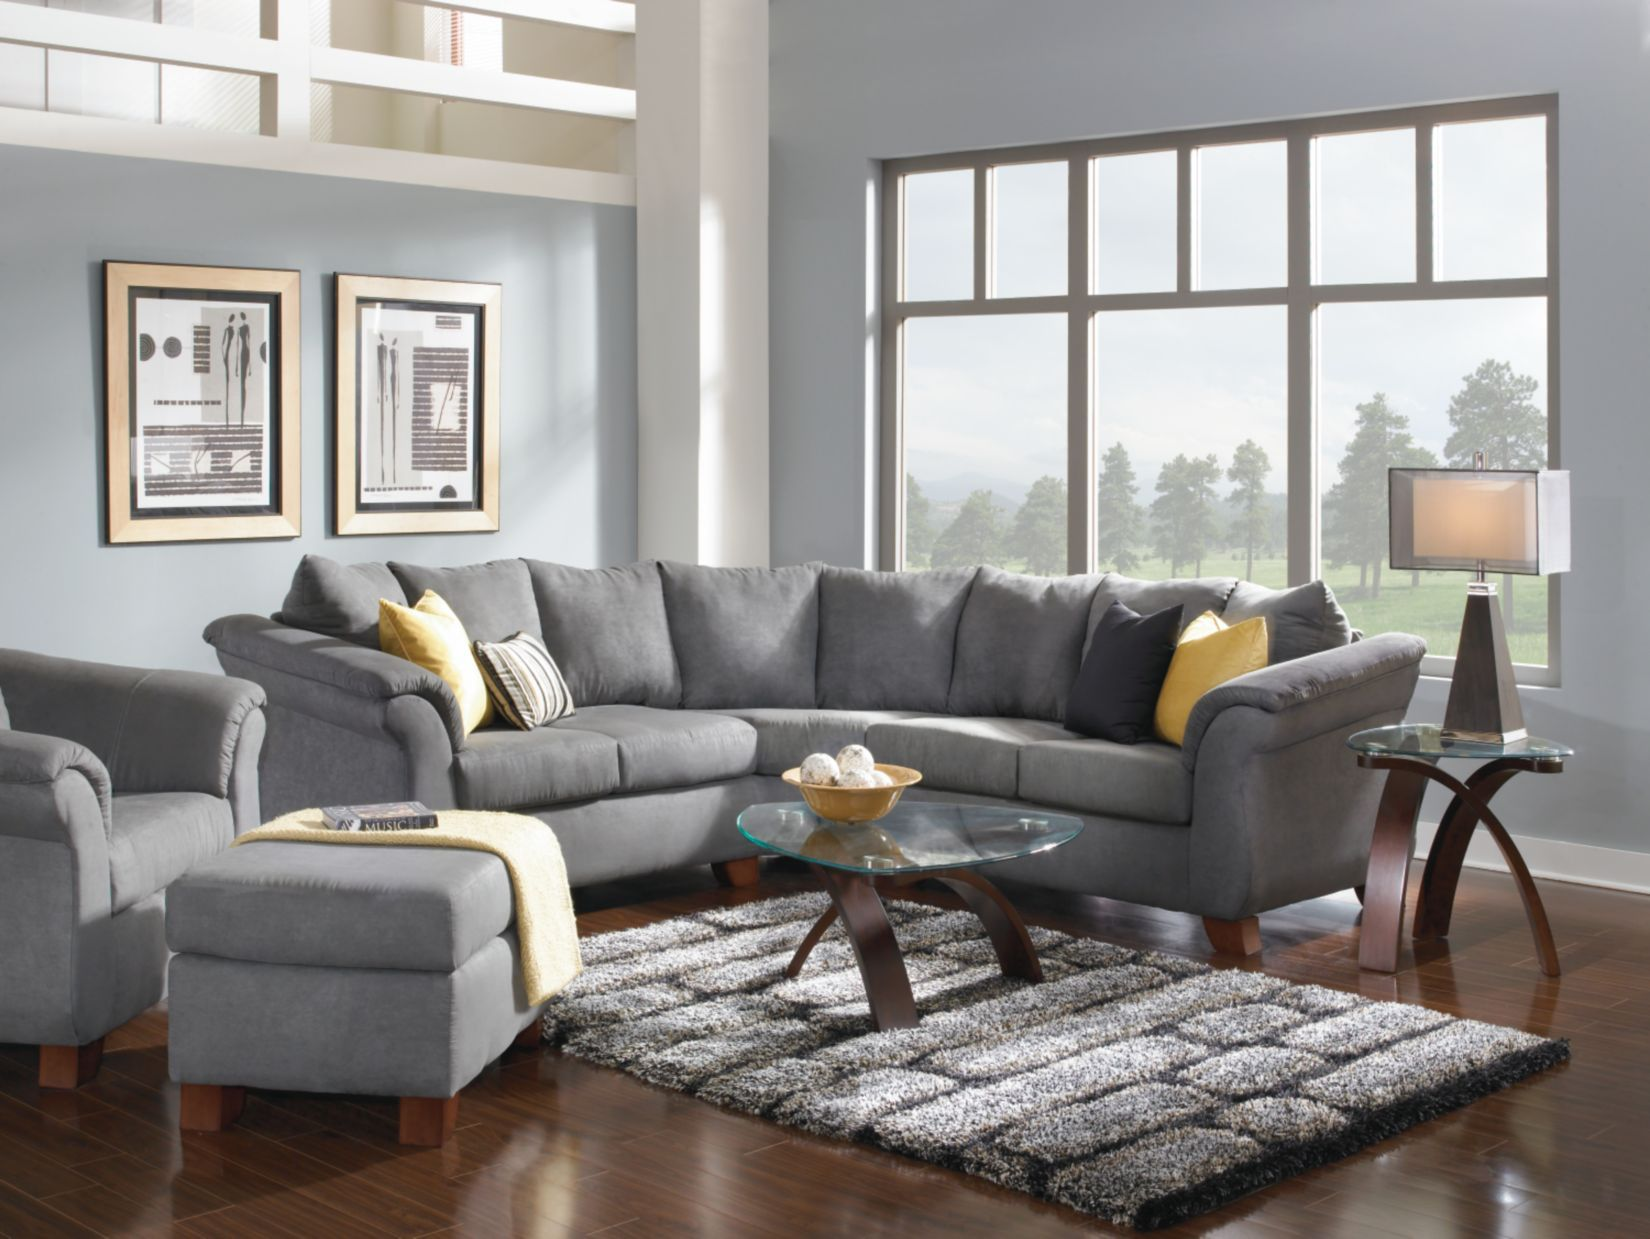 value city furniture living room sets tiny with fireplace and tv adrian graphite 4 pc package